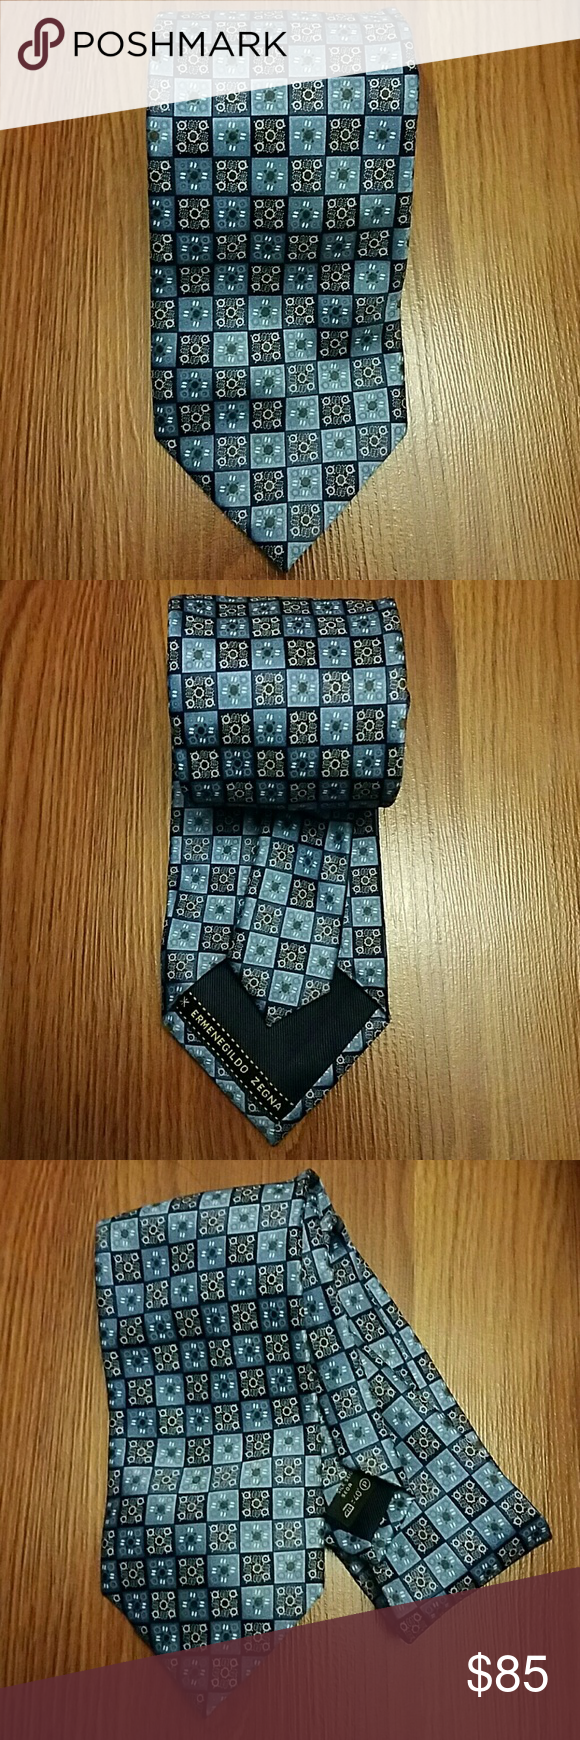 Men's Ermenegildo Zegna Necktie Ermenegildo Zegna necktie. 100% silk. Made in Italy. Worn a few times but still in good condition. Ermenegildo Zegna Accessories Ties